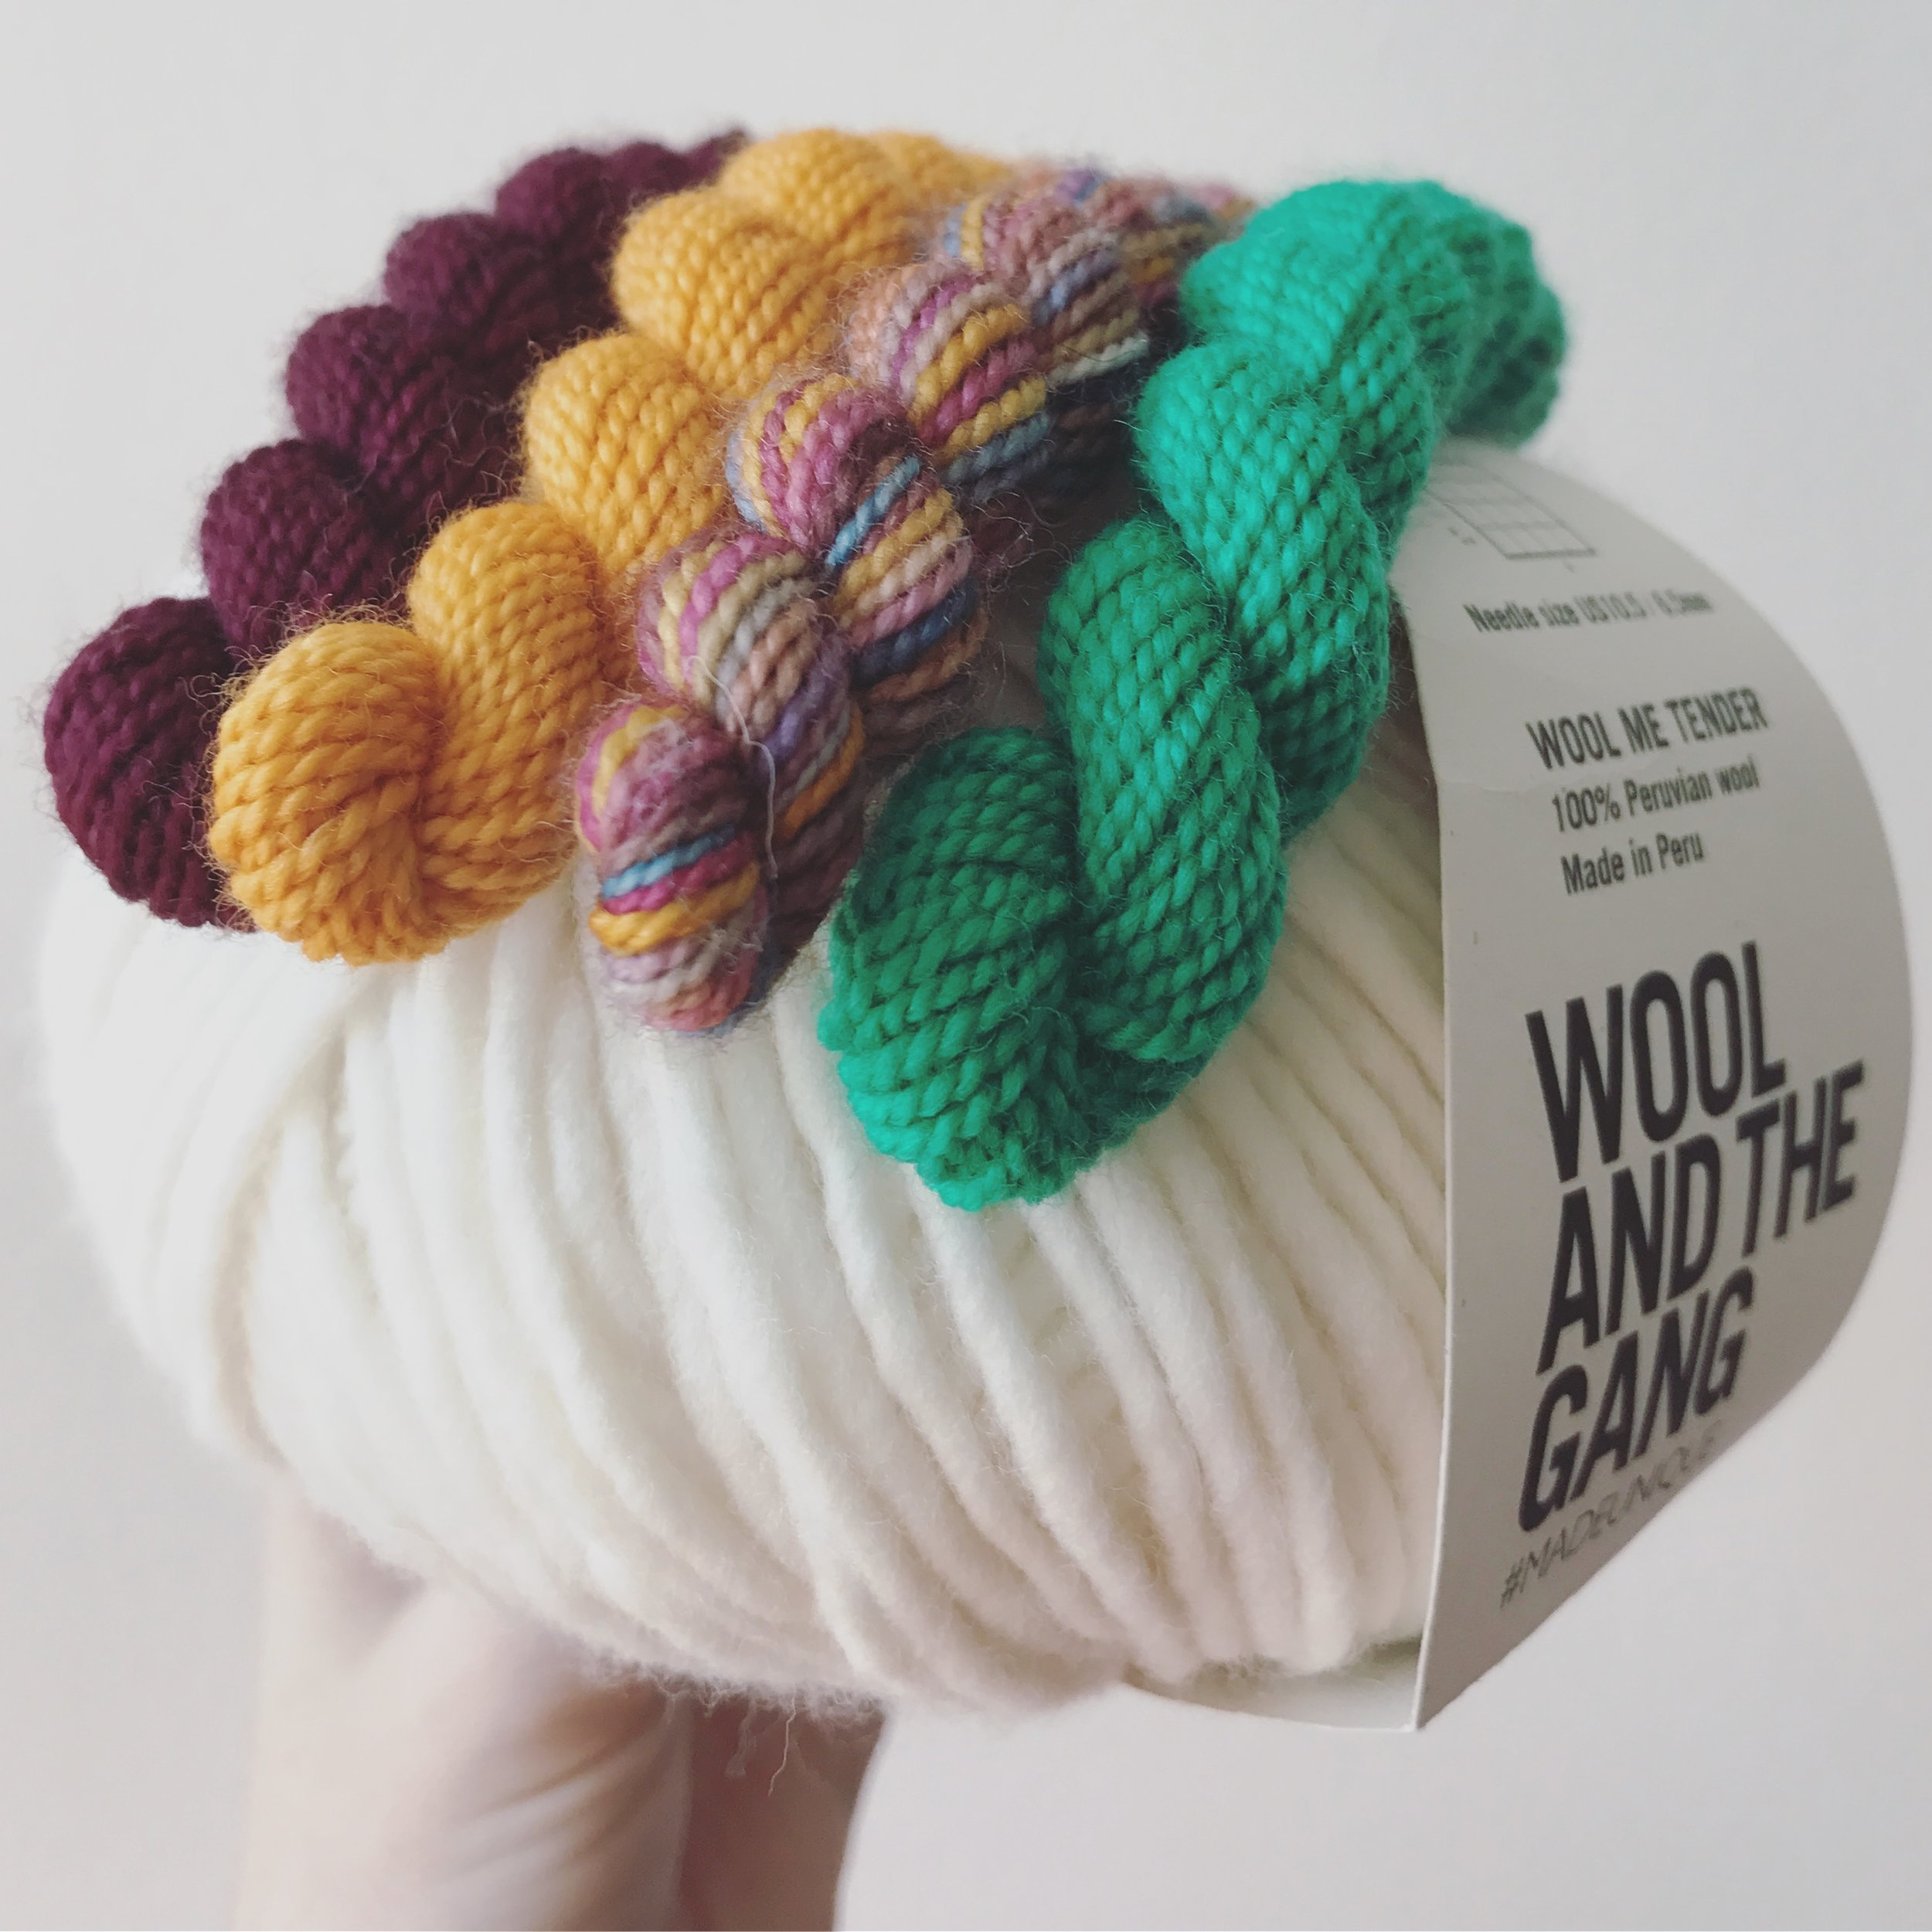 Wool and the Gang, Wool Me Tender, White Rhichard Devrieze, Mini Skeins Image © Firefly Fiber Arts Studio